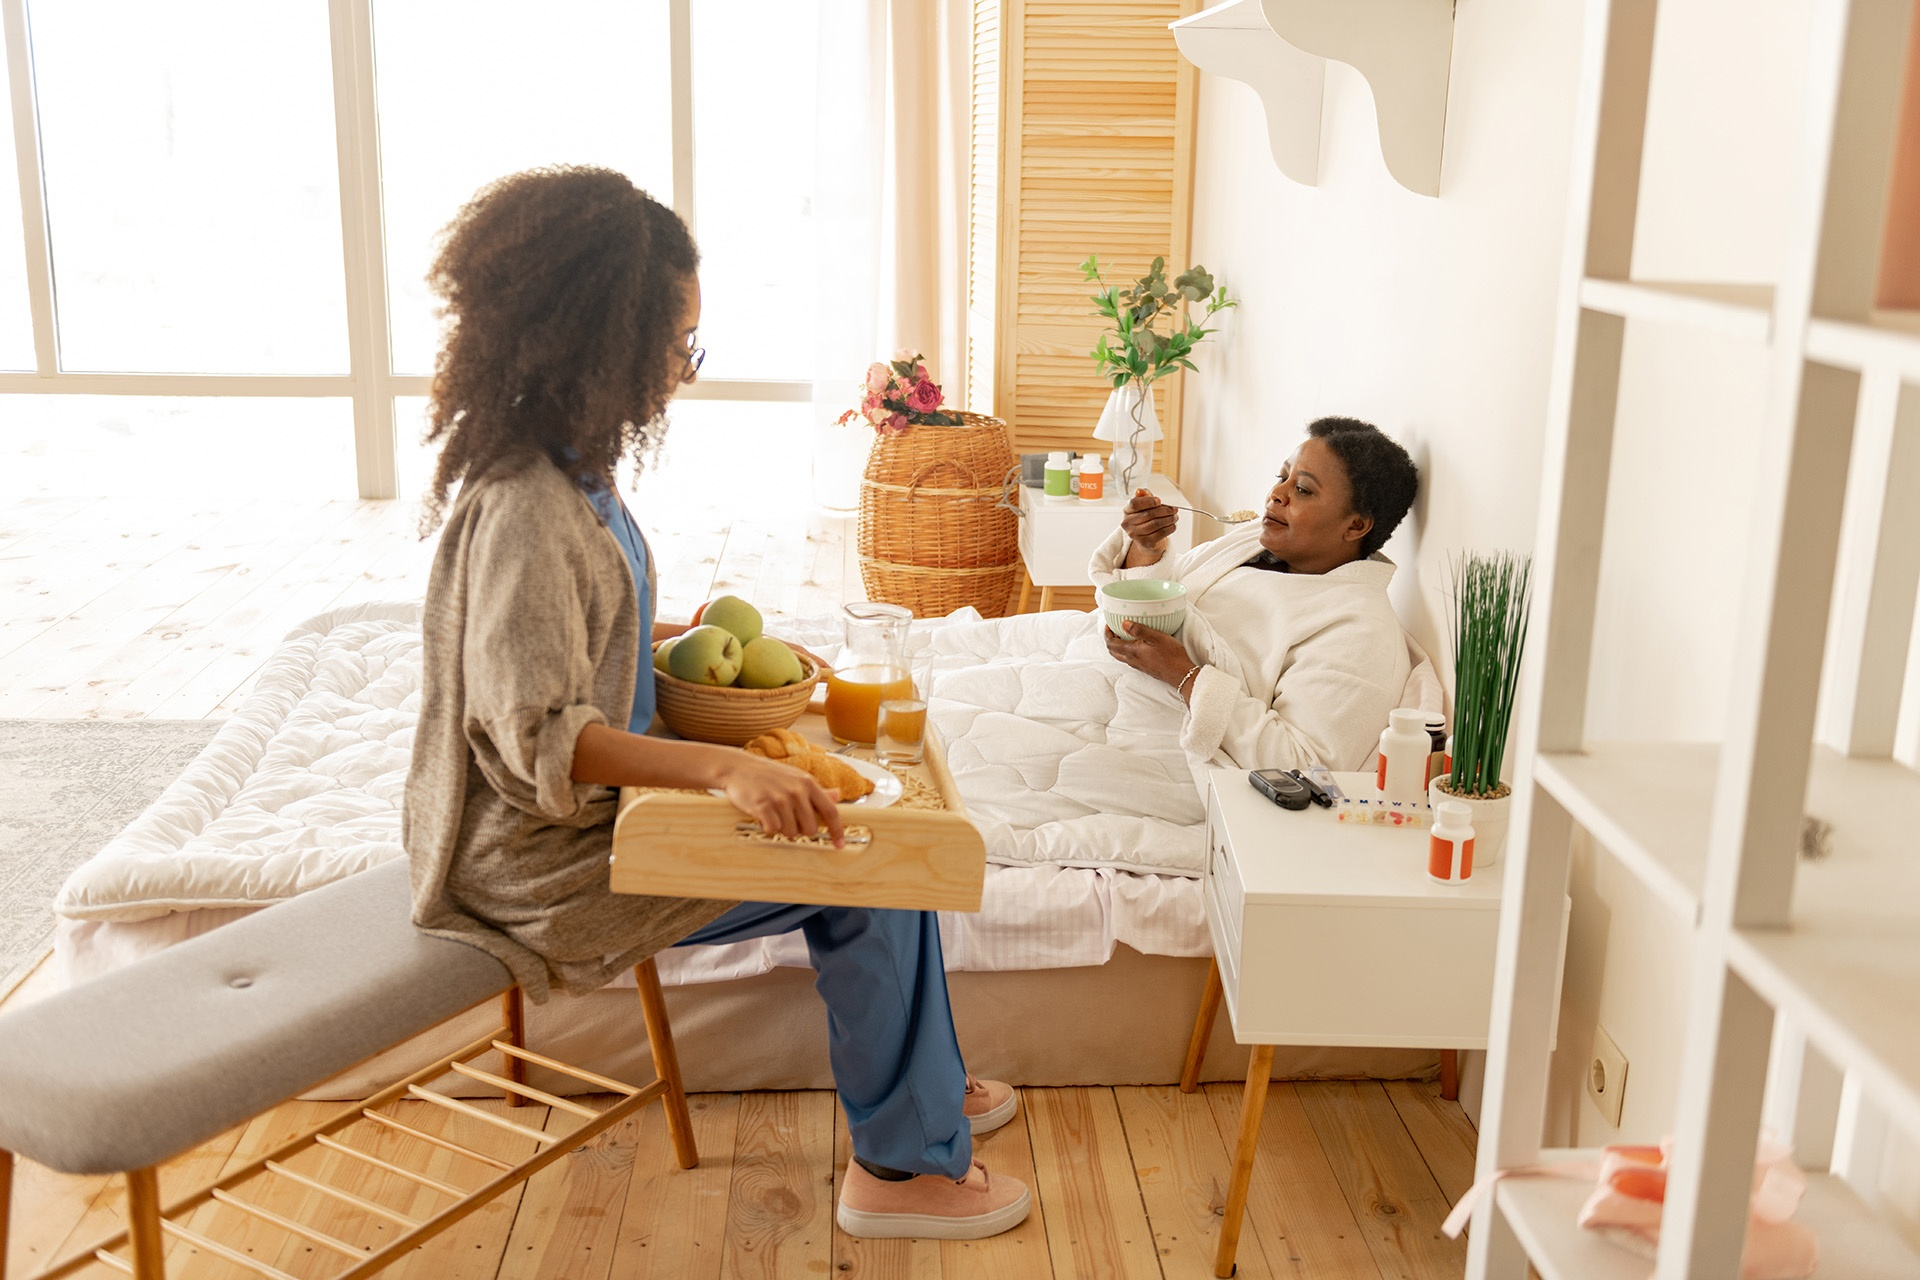 Houston-Facility-Nutrition-Consultation-Home-Health-Group-Homes-Hospice-Palliative-Care-Pinnacle-Nutrition-Consultants